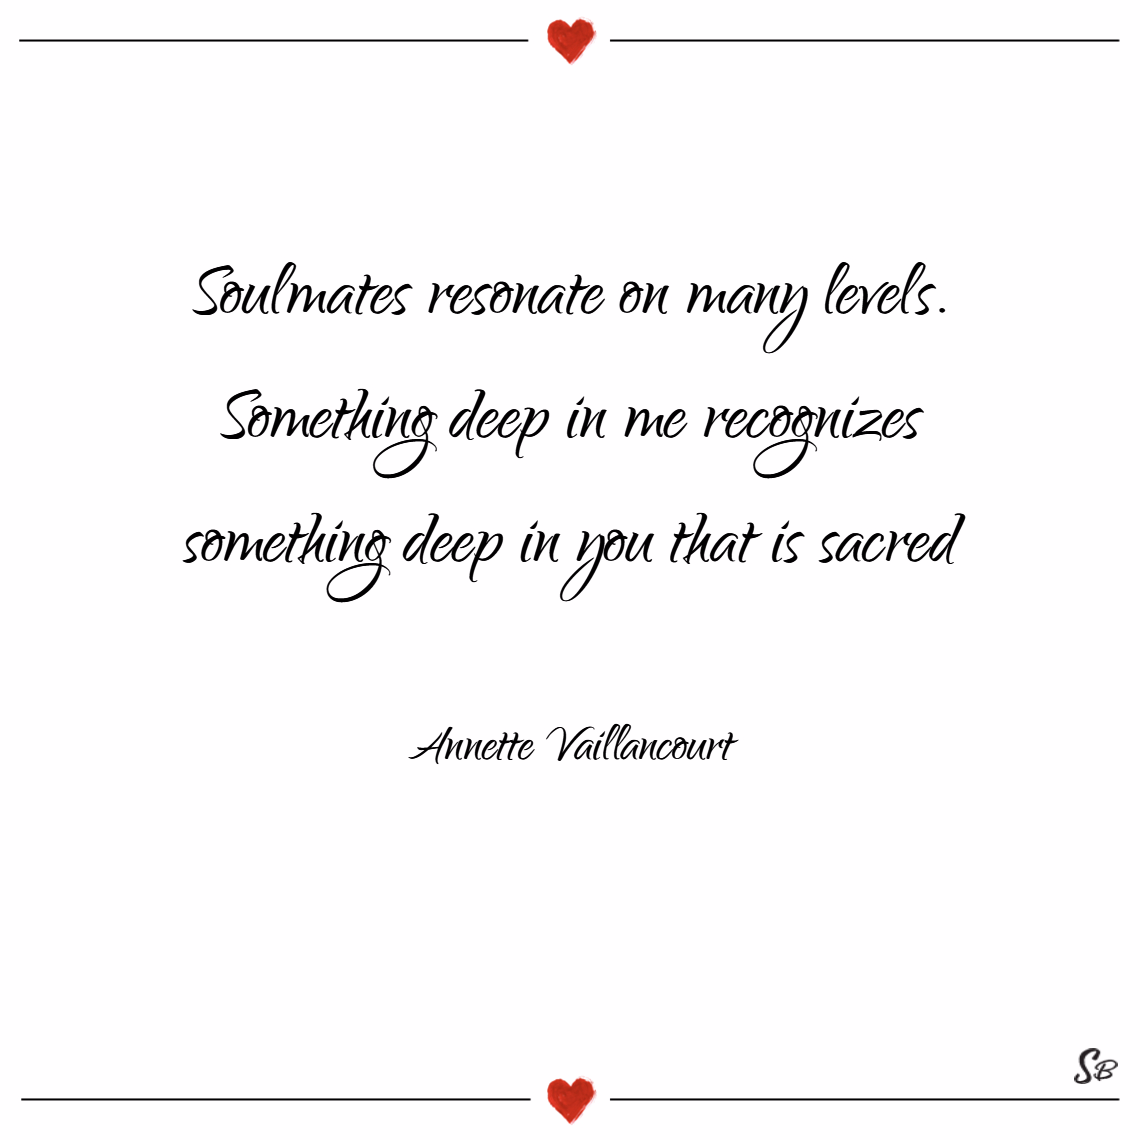 Soulmates resonate on many levels. something deep in me recognizes something deep in you that is sacred. – annette vaillancourt